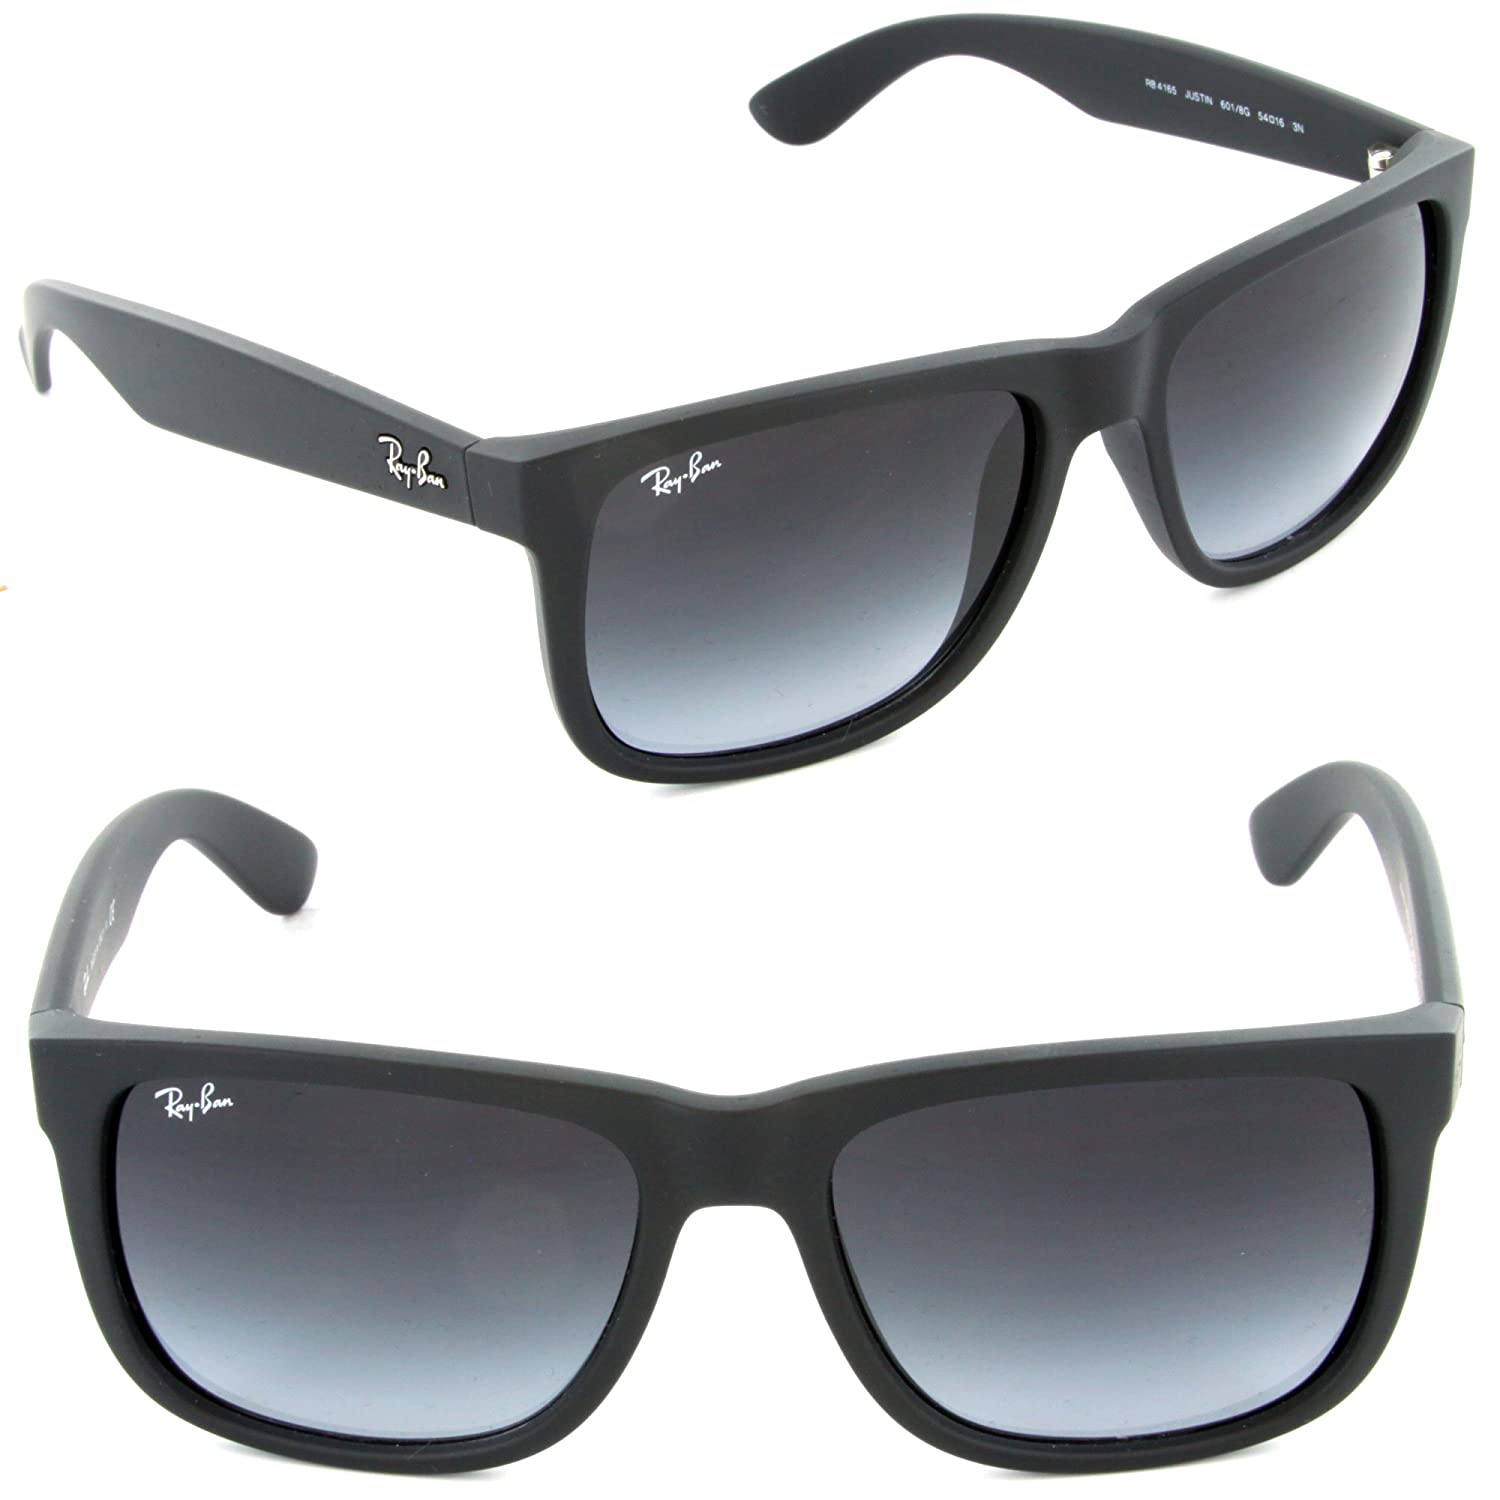 c76a1ae486128 Amazon.com   Ray-ban Rb4165 Justin 601 8g Black Frame Unisex Sunglasses  Gray Gradient Lens 51mm   Everything Else